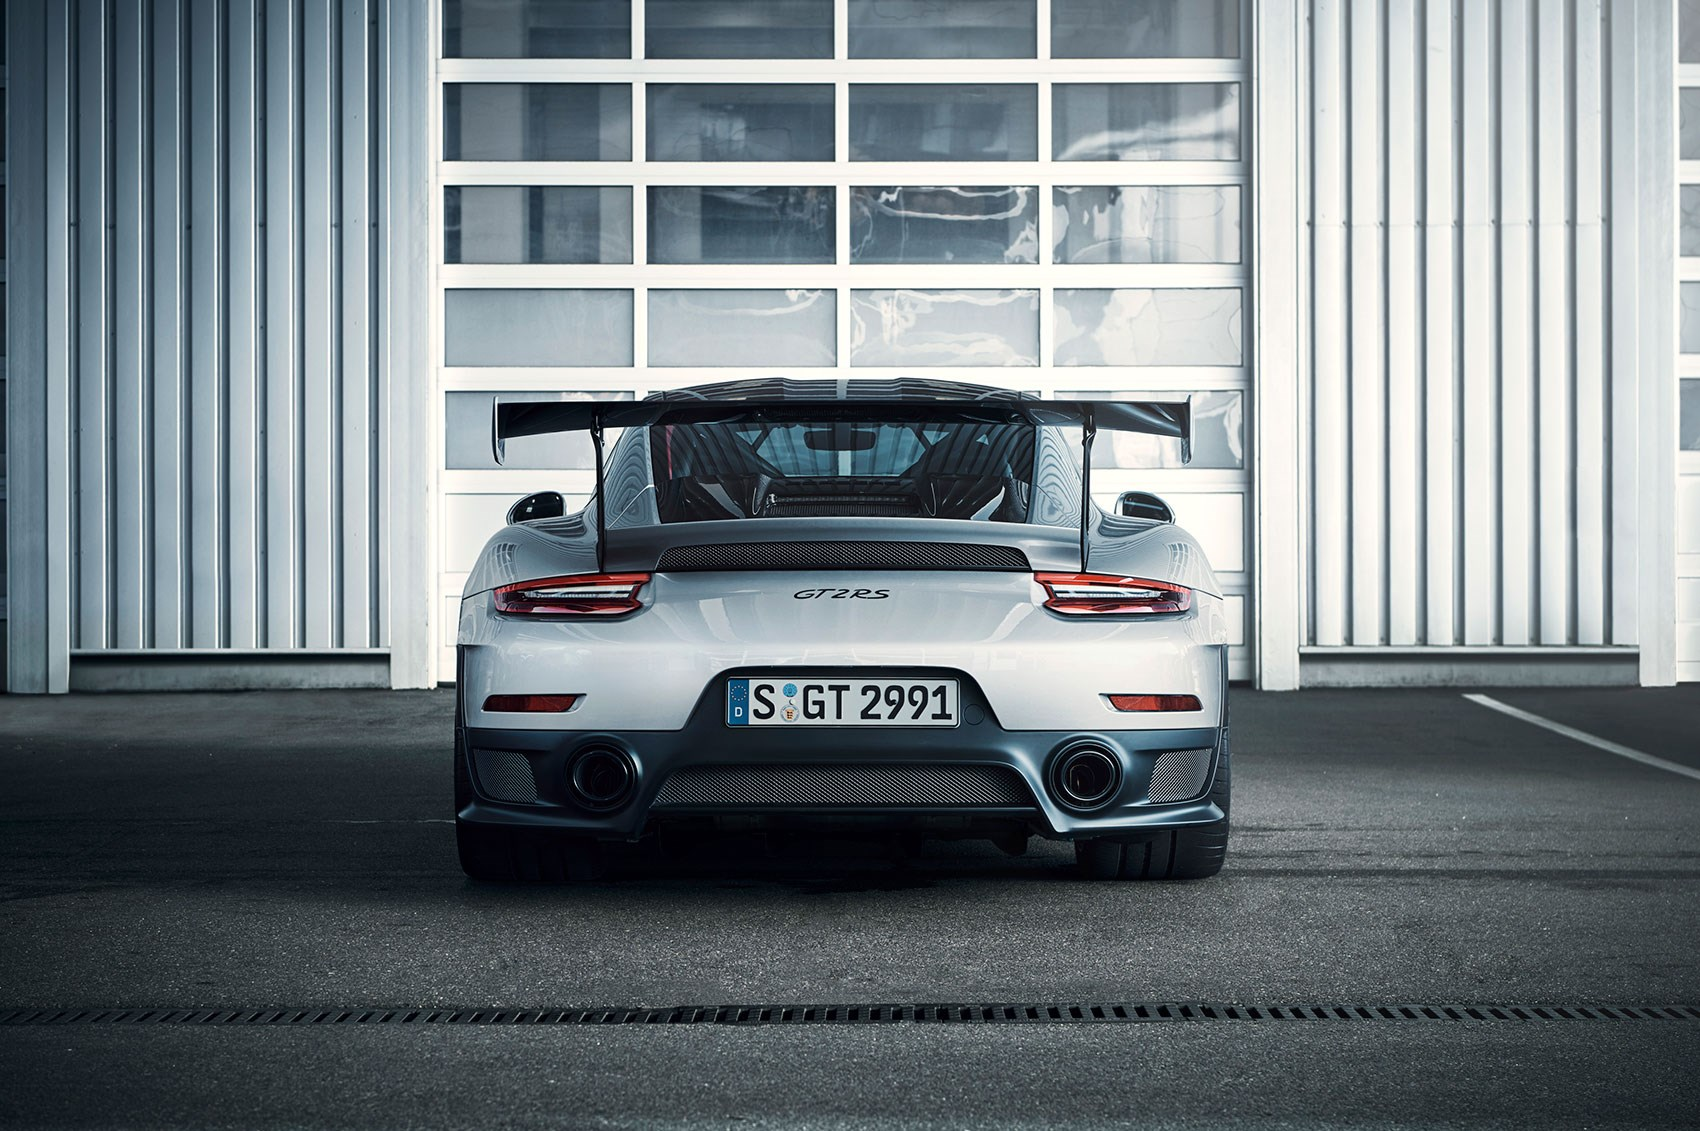 The 991 2 Generation Porsche 911 Gt2 Rs Car Magazine S First Ride Review